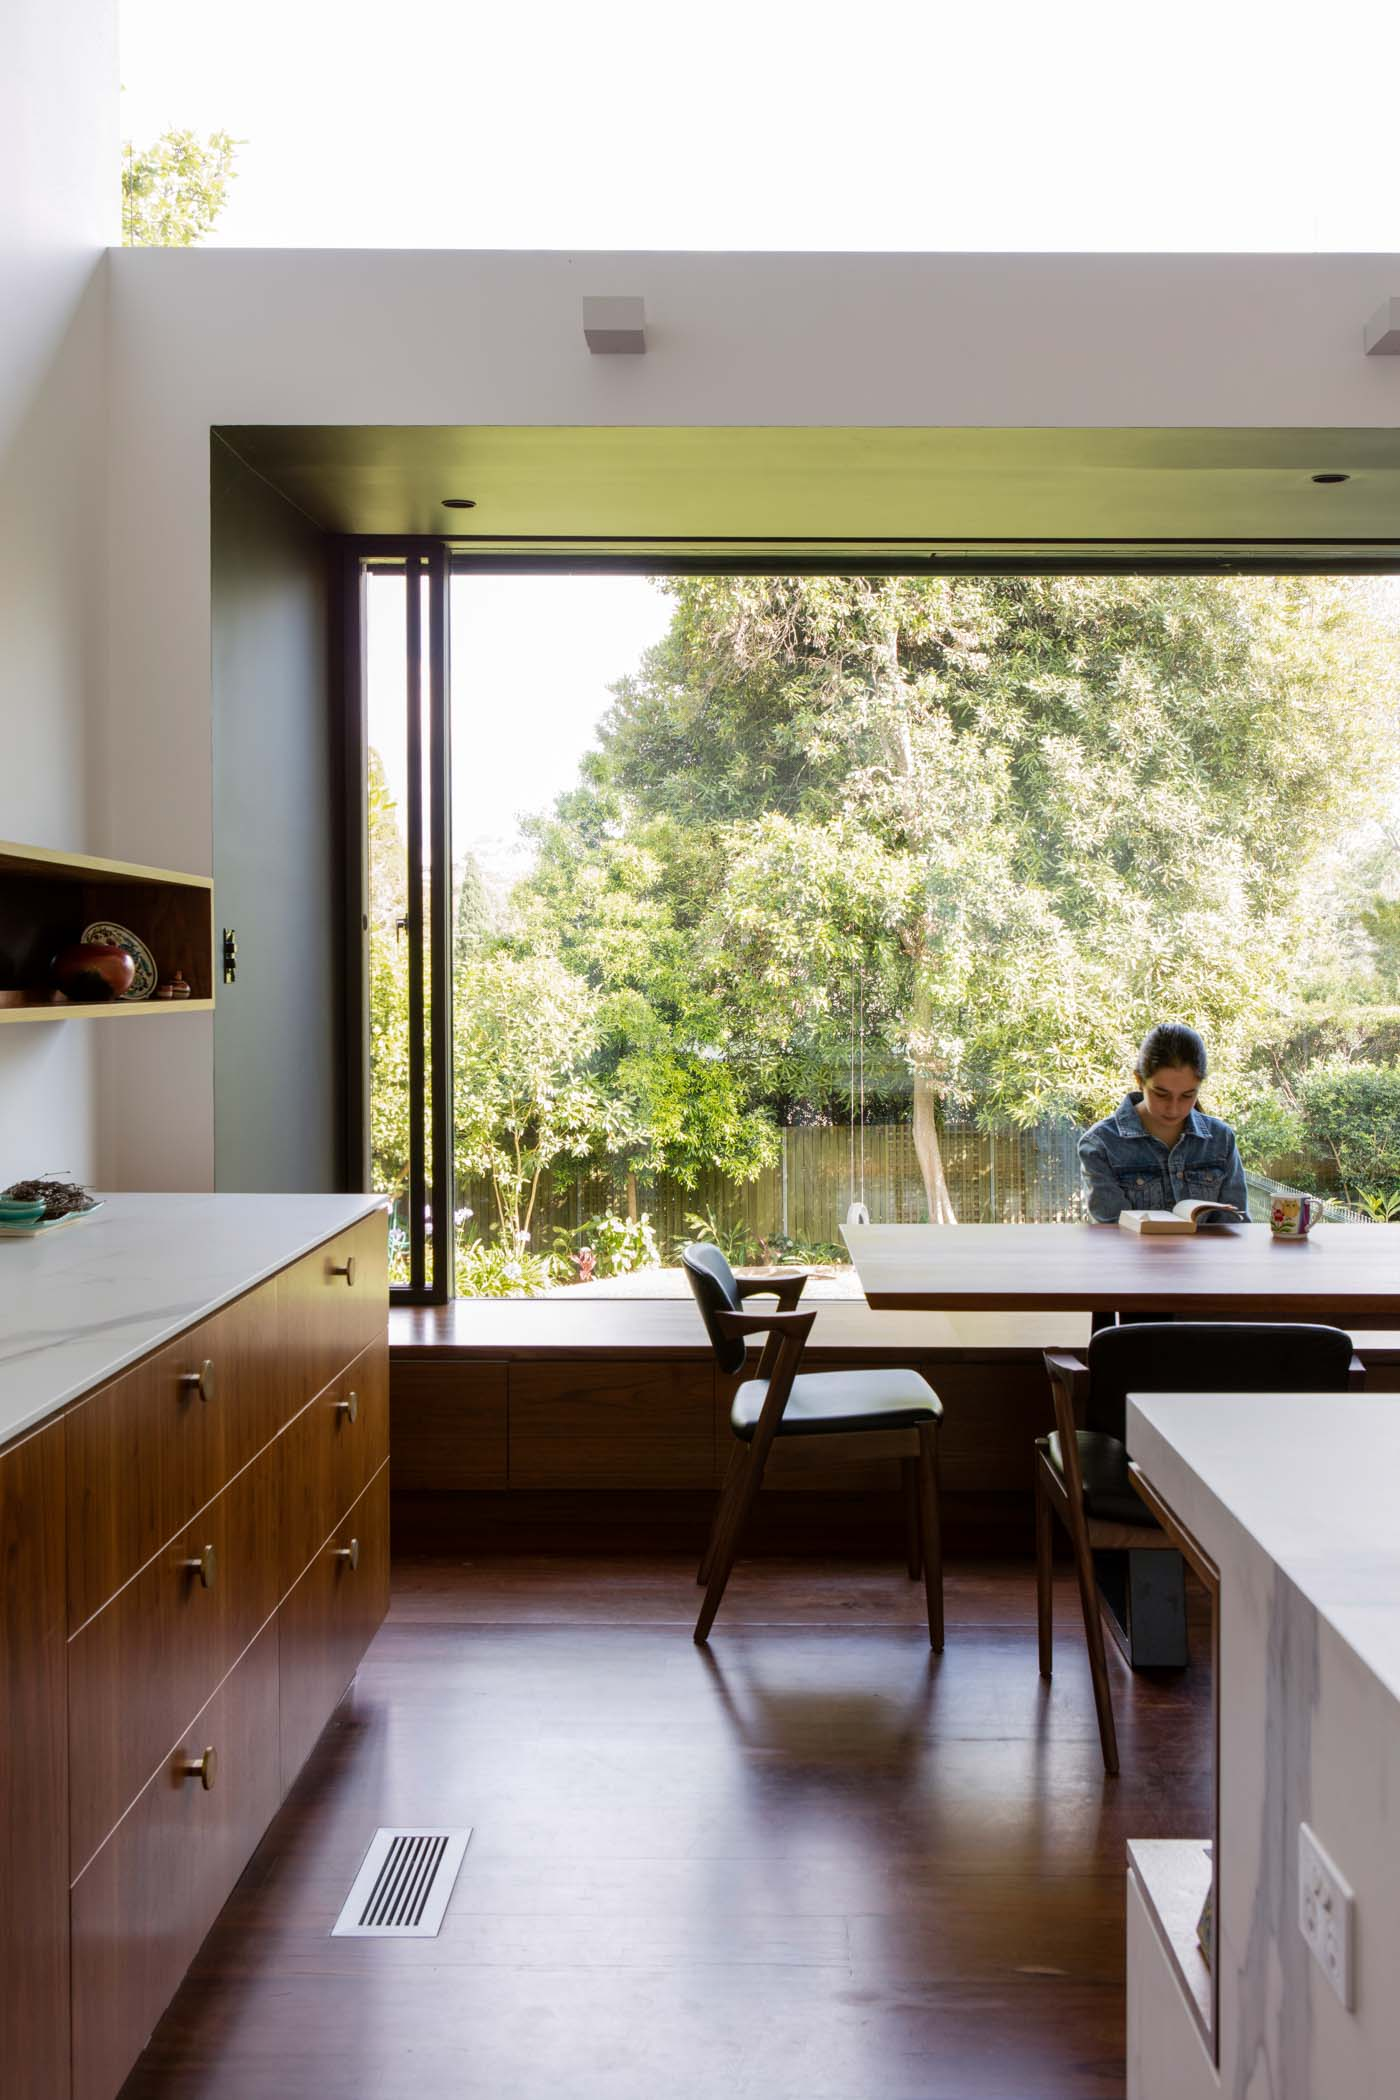 Roseville House by Sydney residential architects Sam Crawford Architects. The large windows forming seats are a seamless connection to the garden.